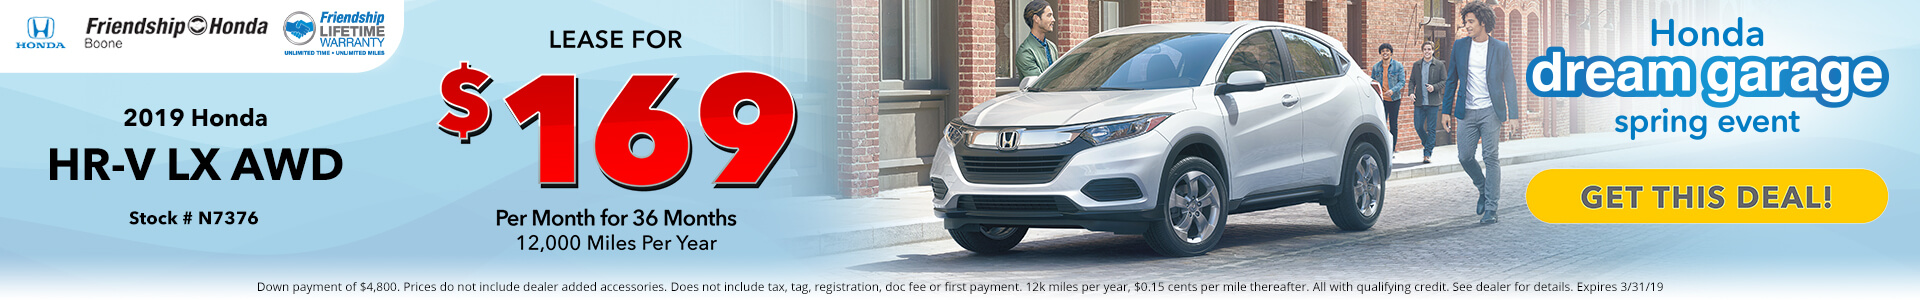 Honda HR-V $169 Lease